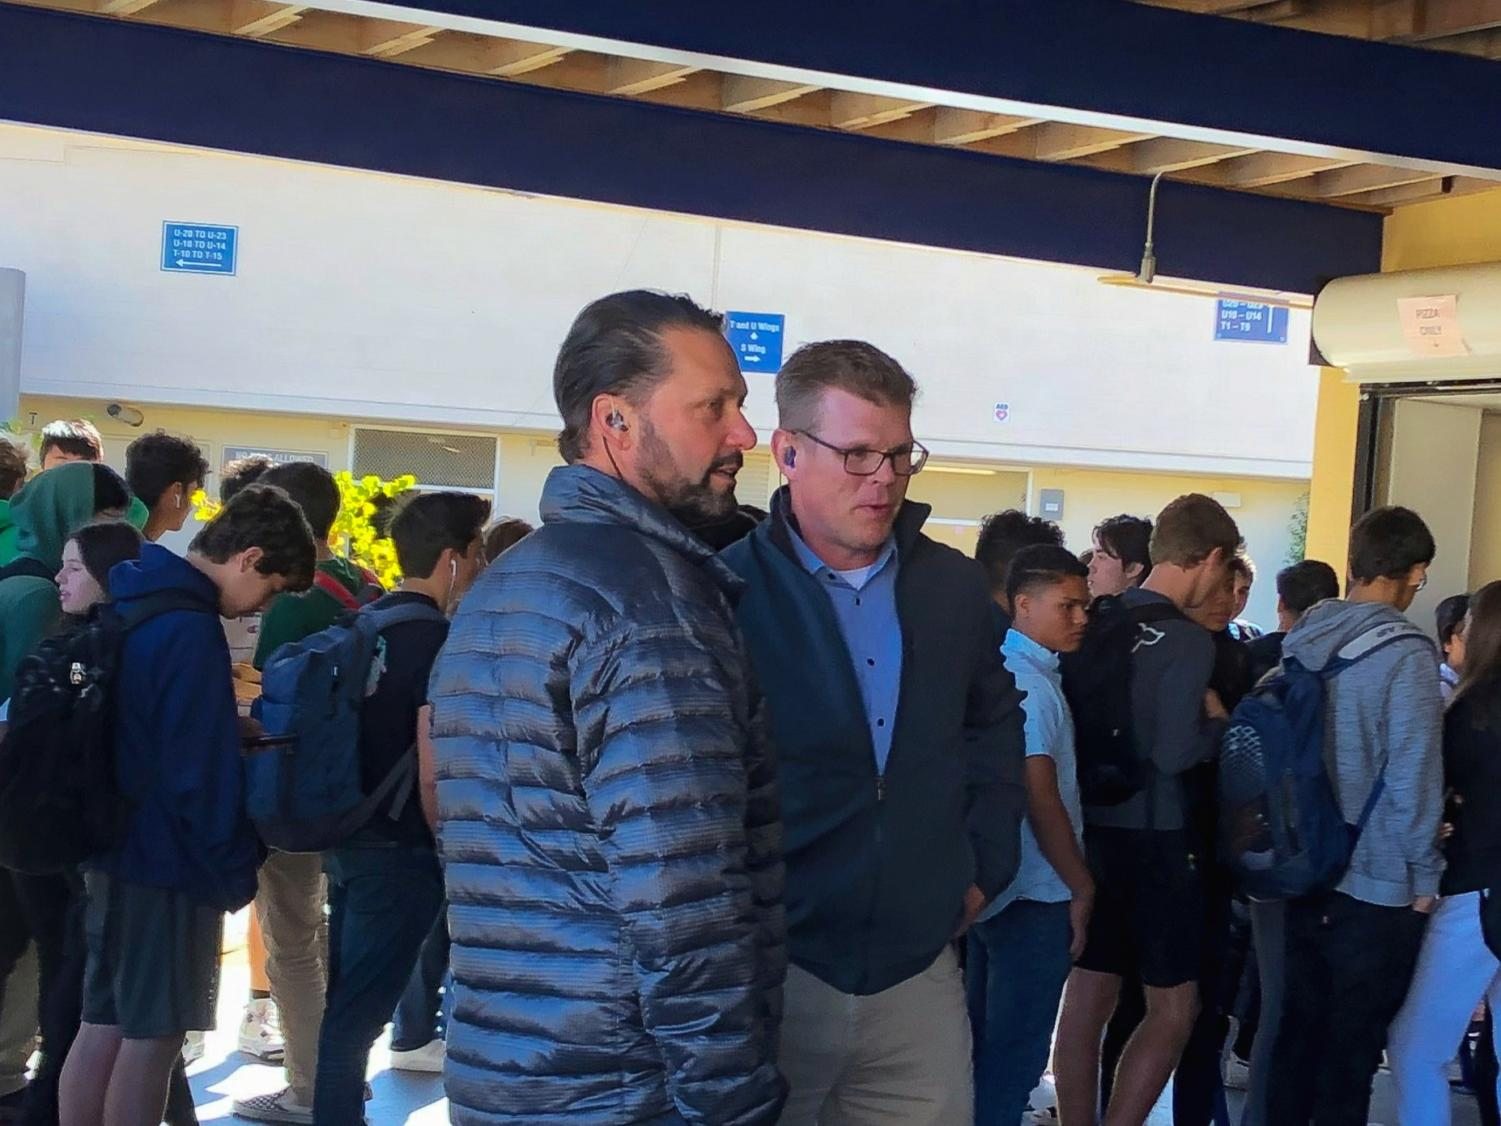 Grant Steunenberg and Gregg Patner talk to each other as they supervise students waiting in line for their lunch.